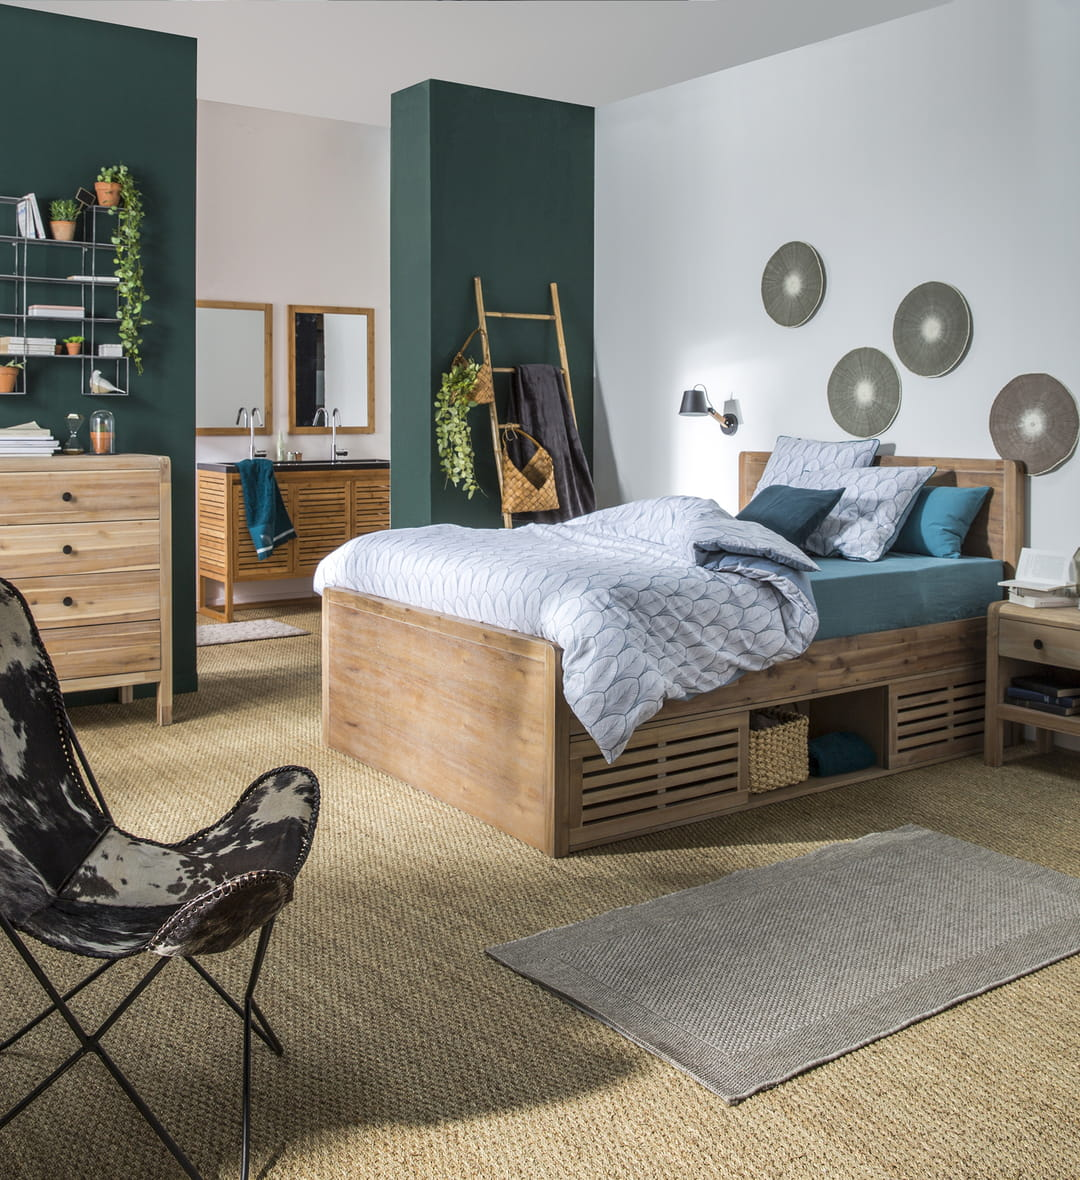 mobilier gain de place les 8 indispensables pour un petit espace. Black Bedroom Furniture Sets. Home Design Ideas